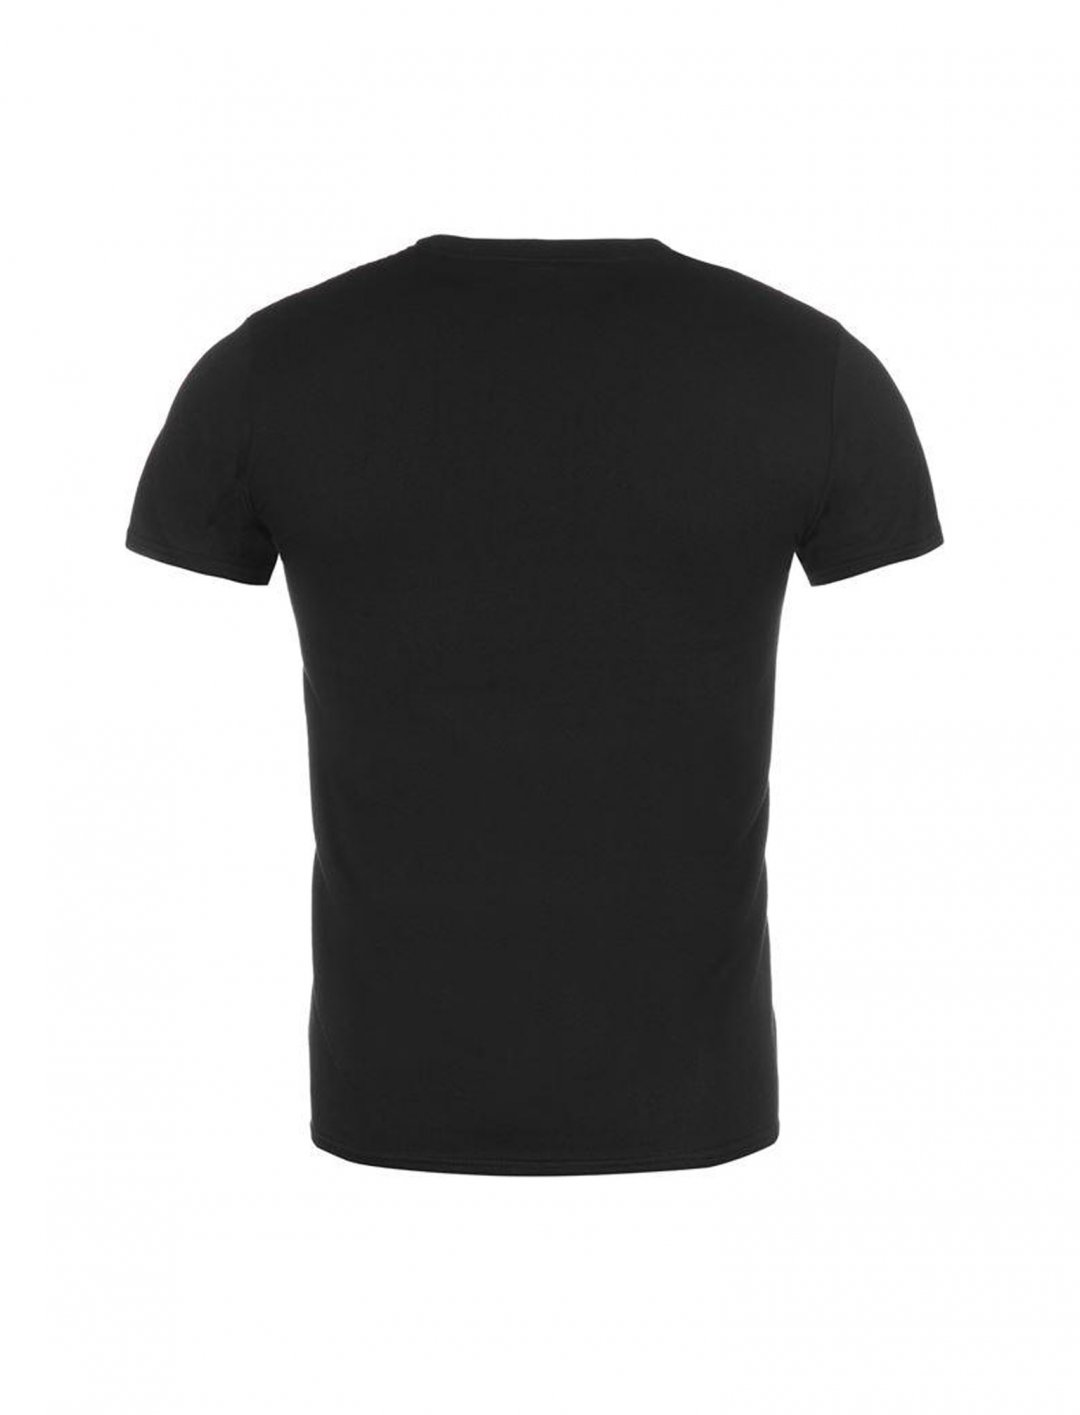 "Eminem T-shirt {""id"":5,""product_section_id"":1,""name"":""Clothing"",""order"":5} Sports Direct"